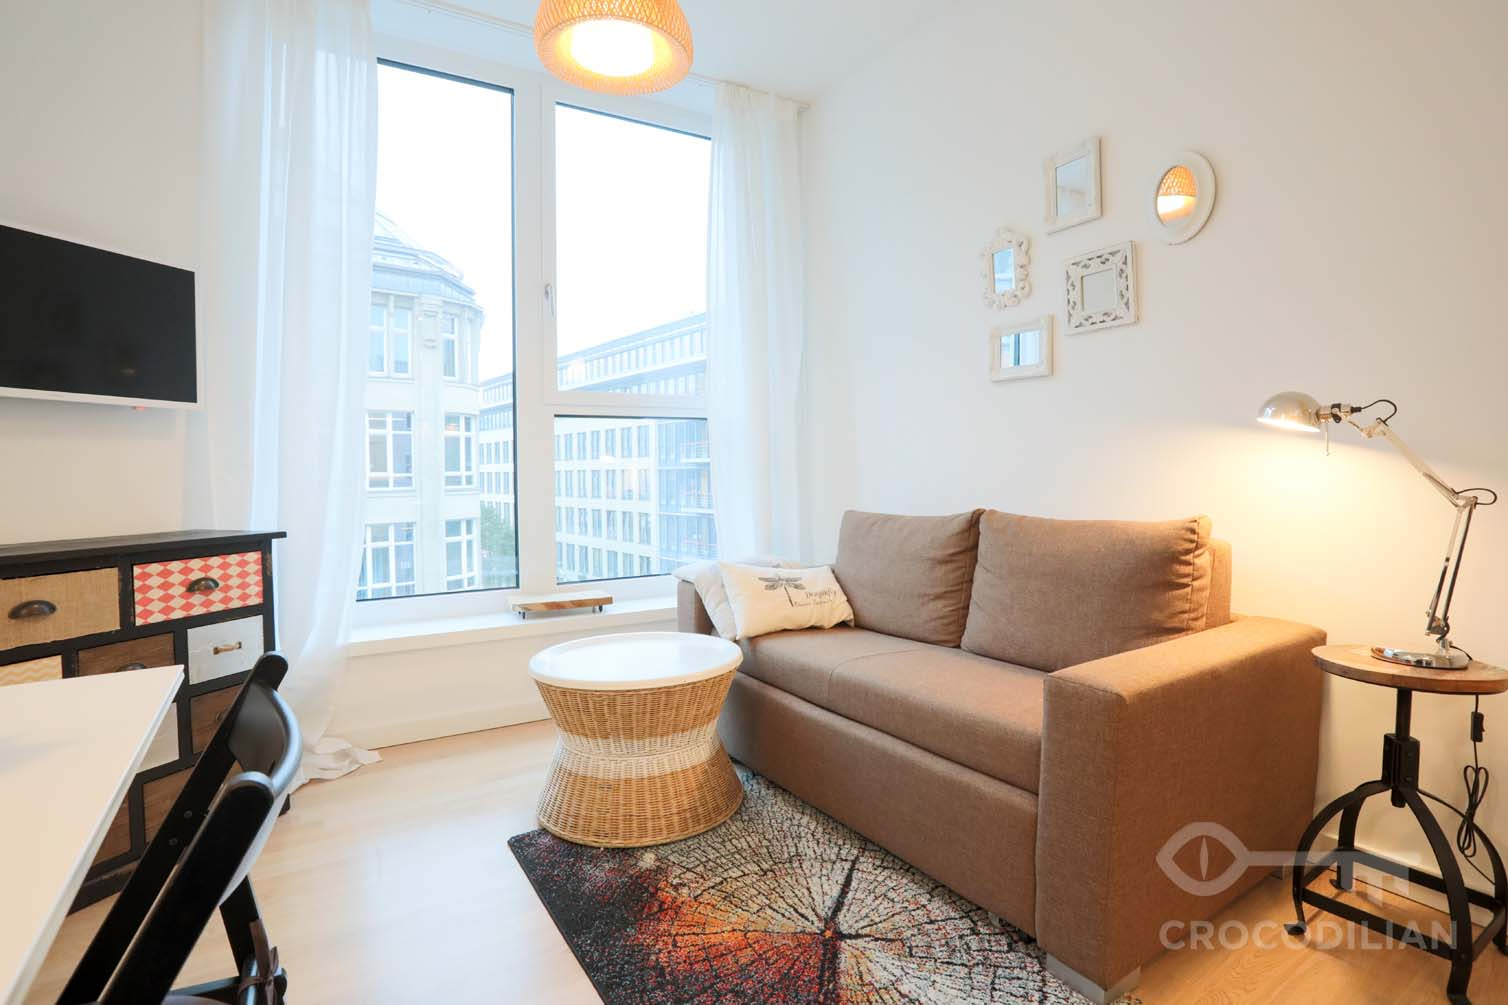 Modern 2- Room Flat in new Building, very centrally located, with private Gym, Chausseestr.